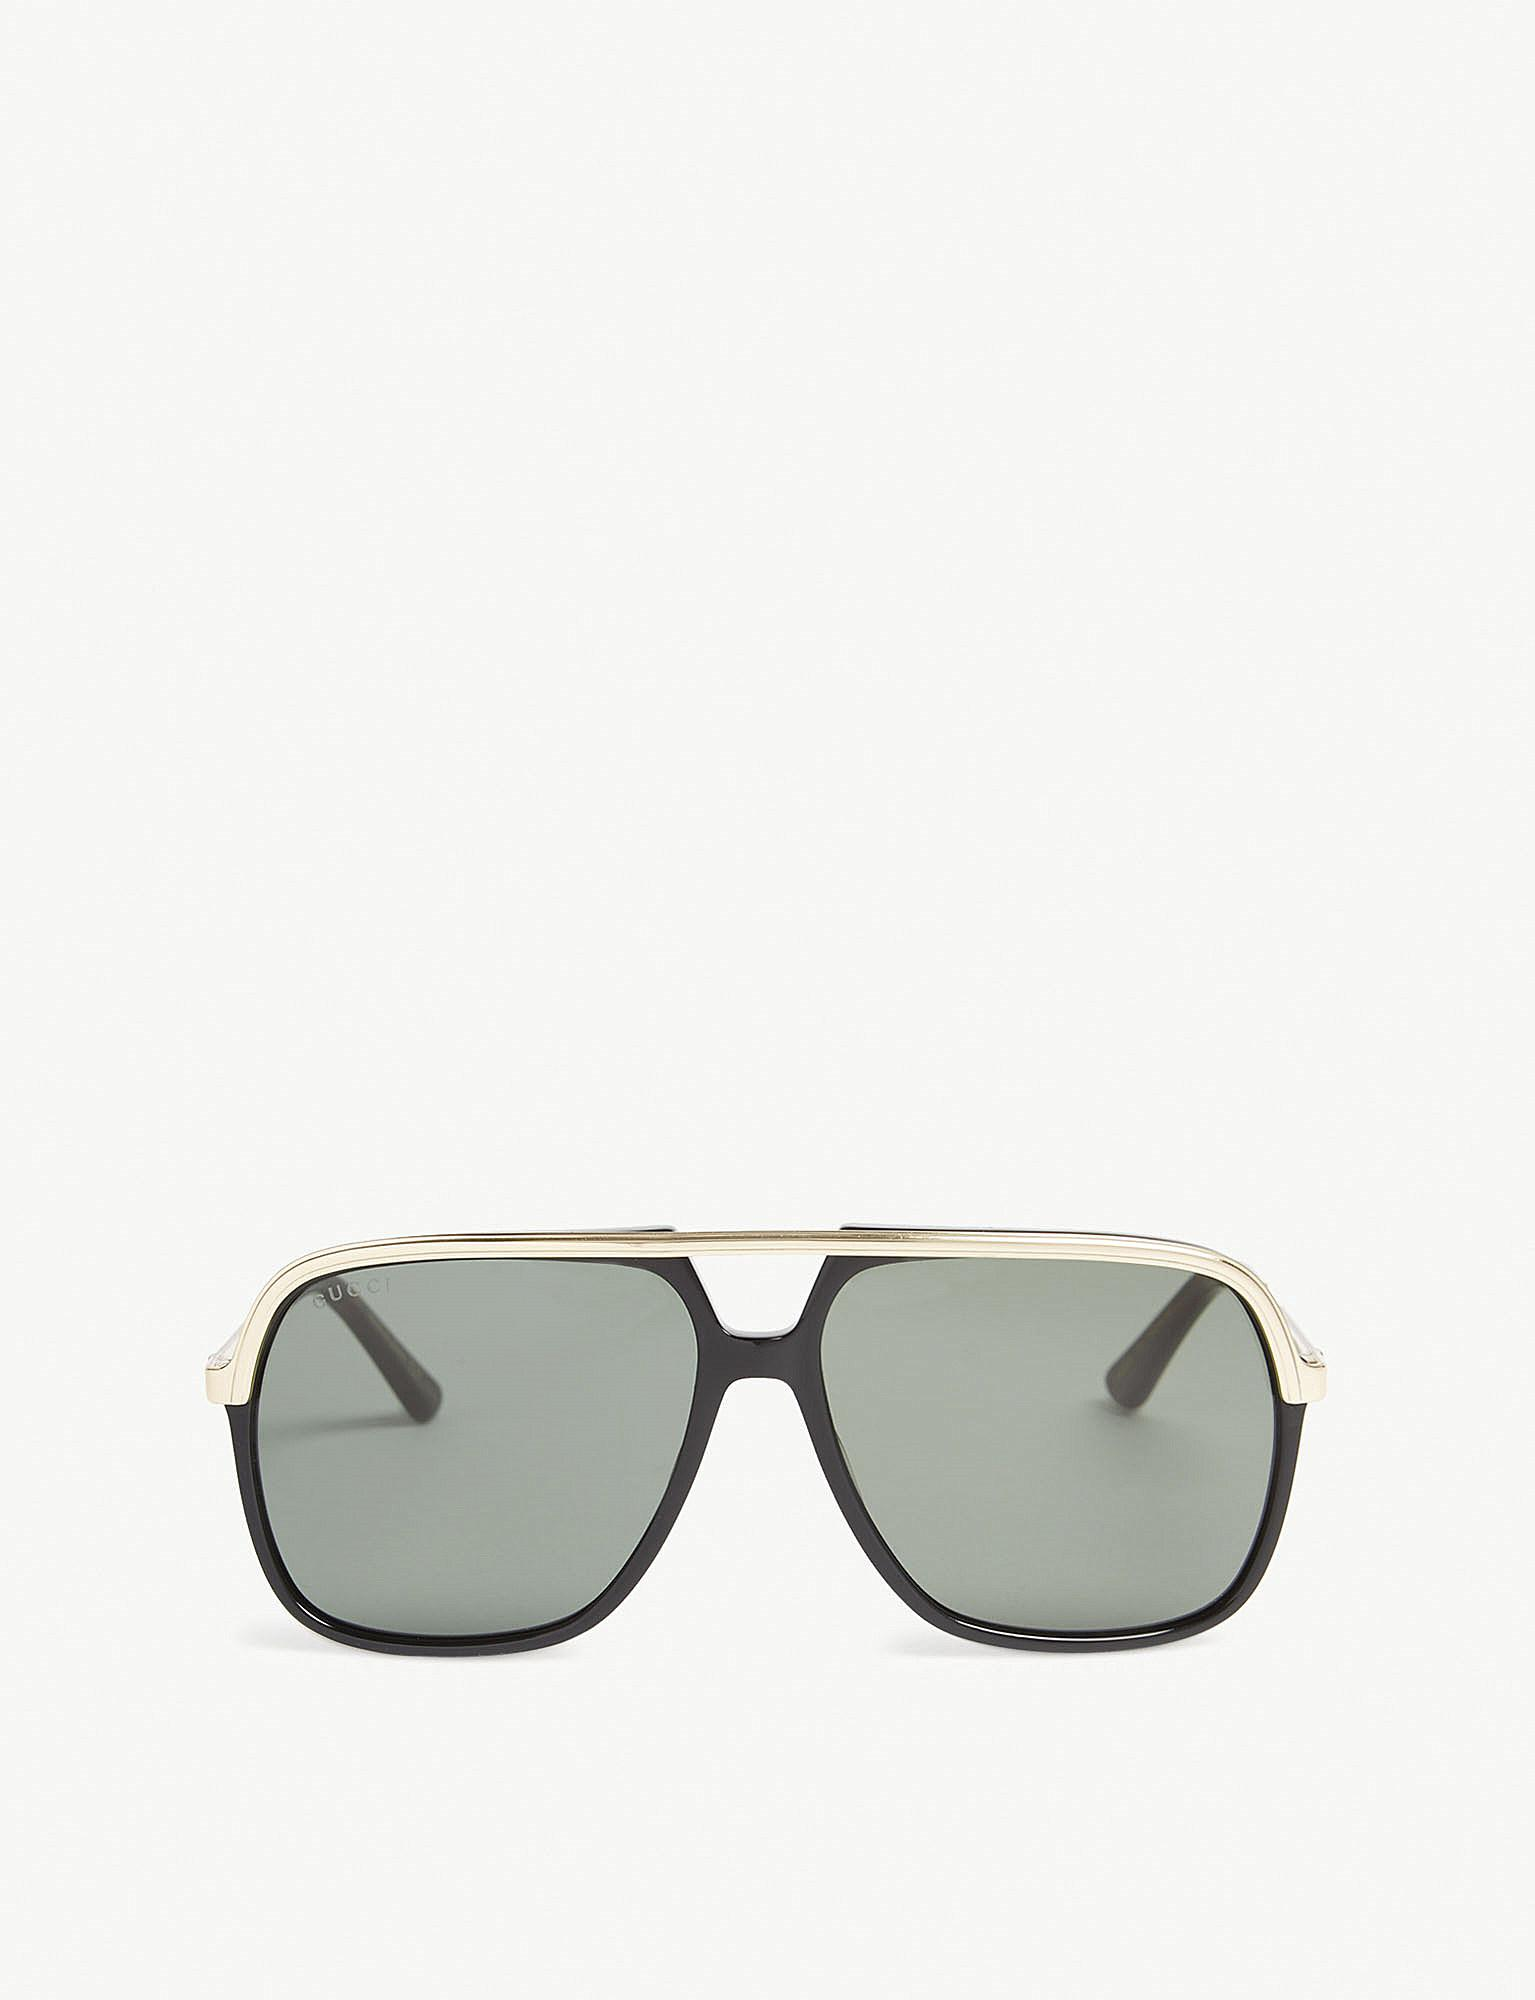 2bdb72c217a Lyst - Gucci Gg0200 Rectangle-frame Sunglasses in Black